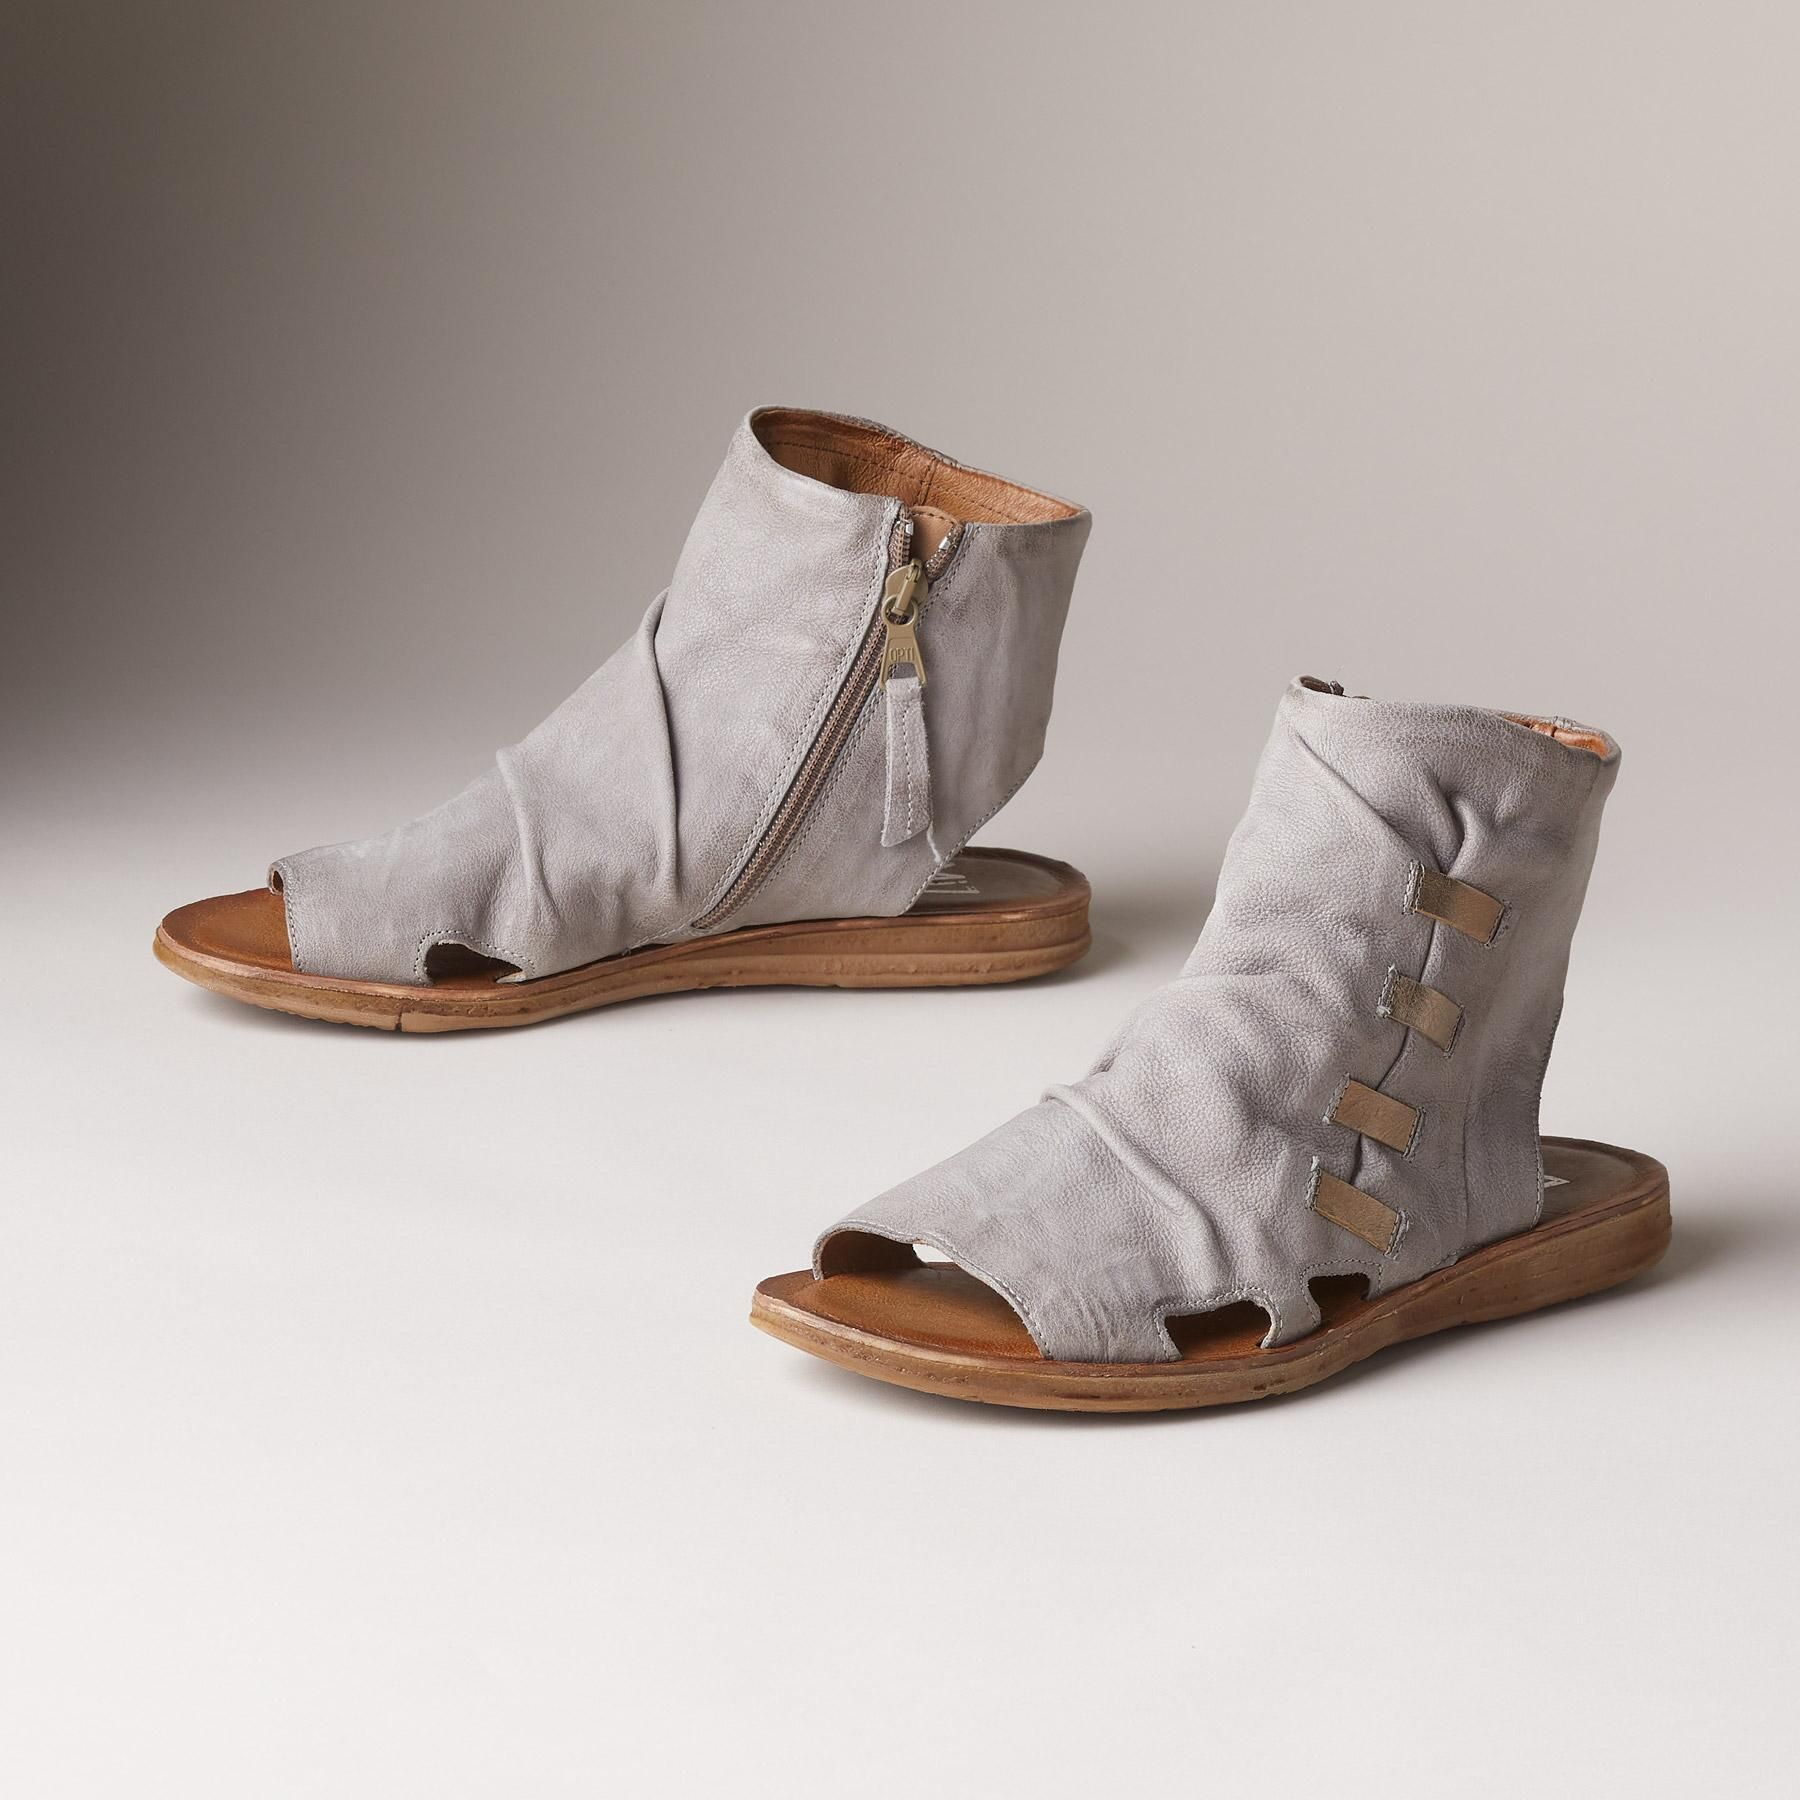 e634a081638 Liza Sandals in 2019 | Hippie Style | Sandals, Leather sandals, Footwear